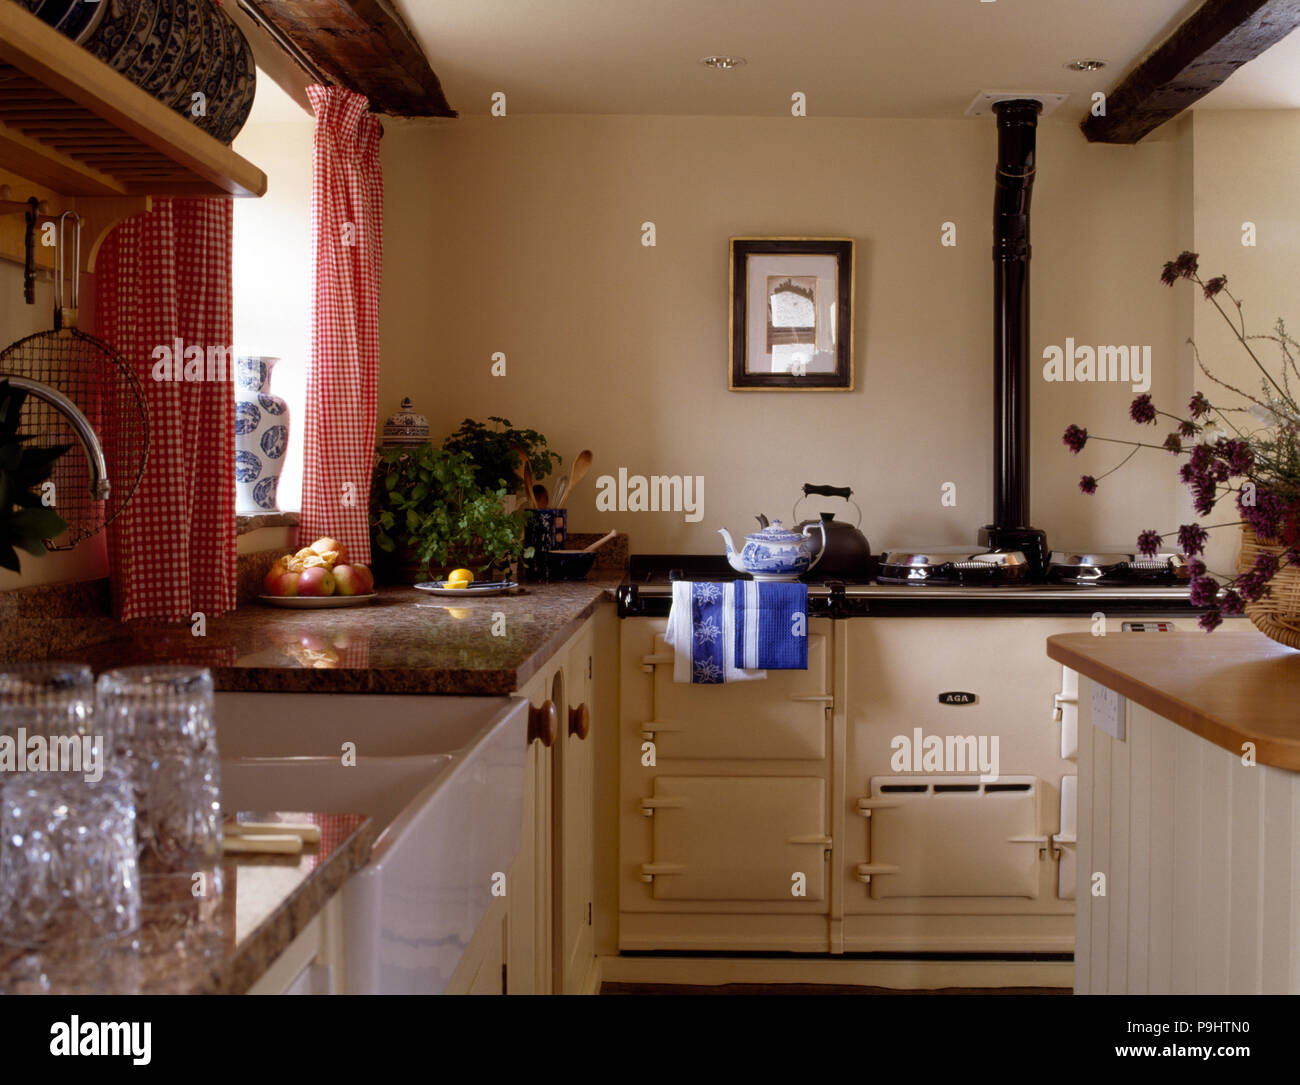 Checked Curtains Stockfotos & Checked Curtains Bilder - Alamy